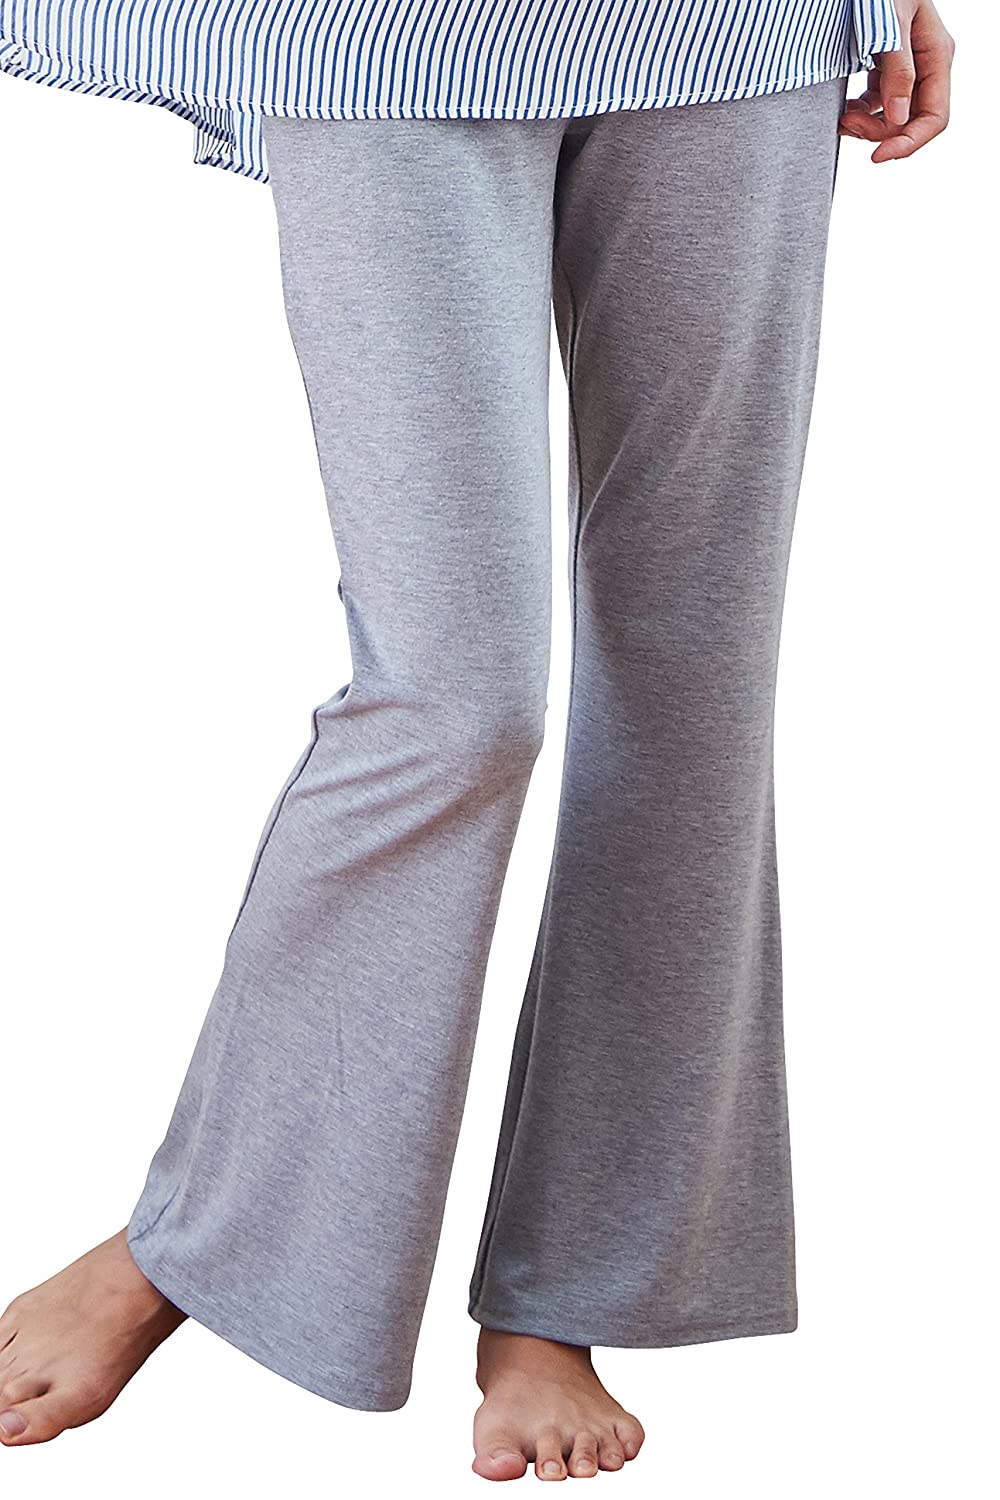 Sweet Mommy Maternity Yoga Pants Sweet Mommy Co. Ltd sp6066